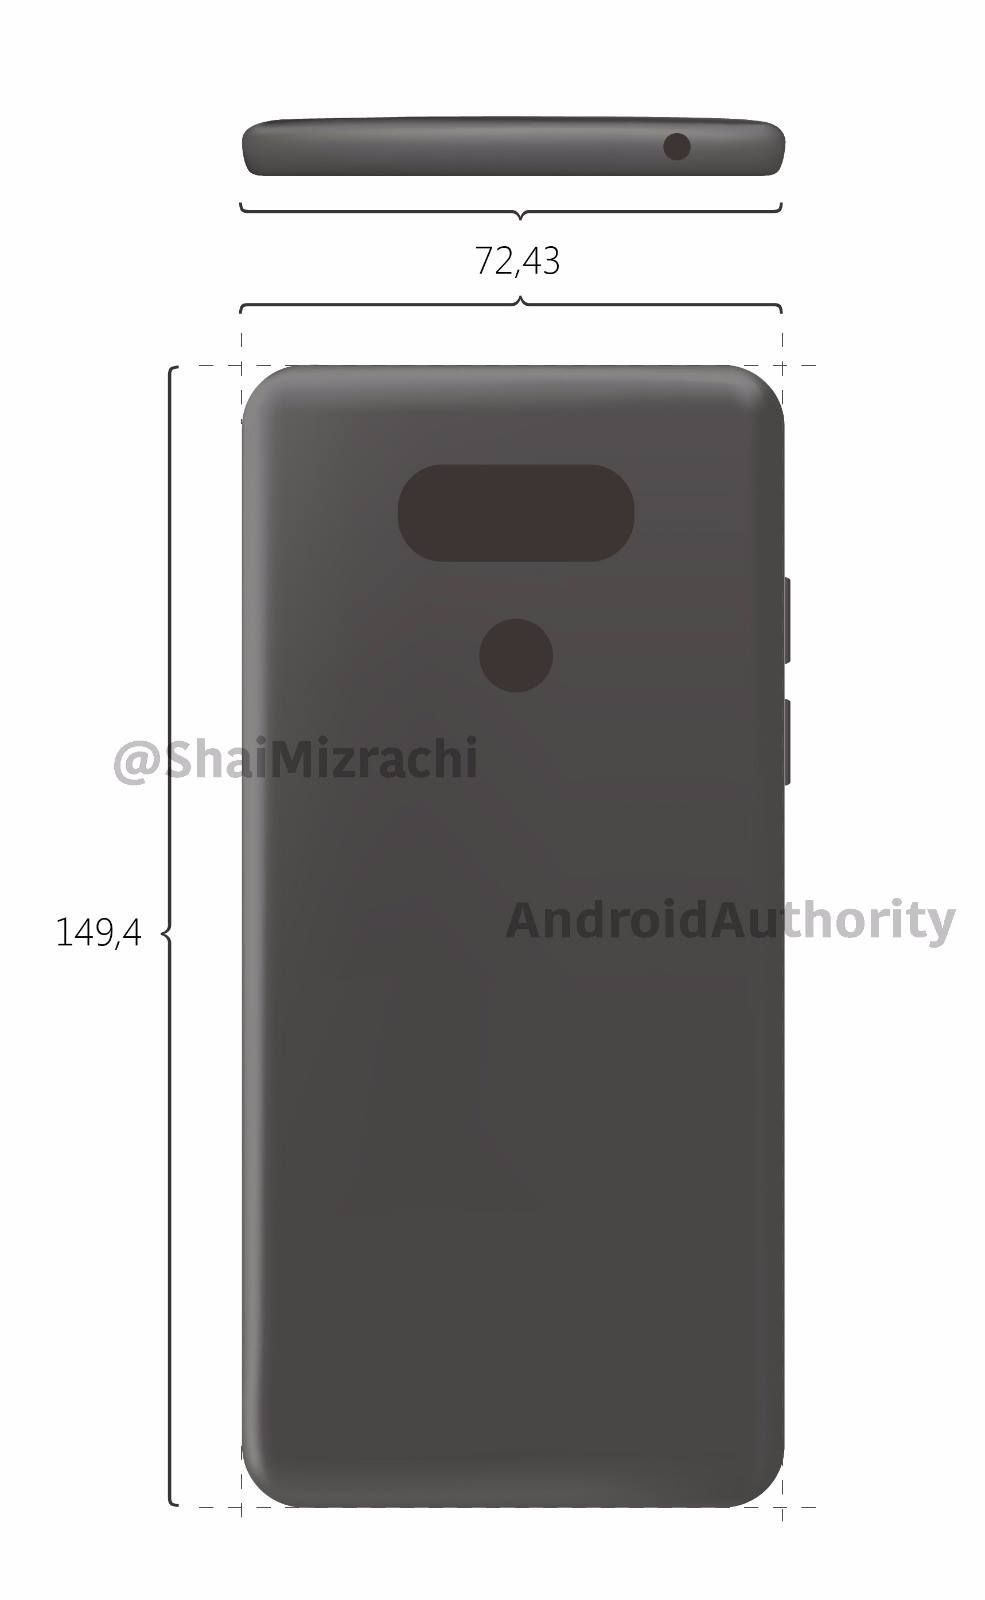 This is LG G6 Render